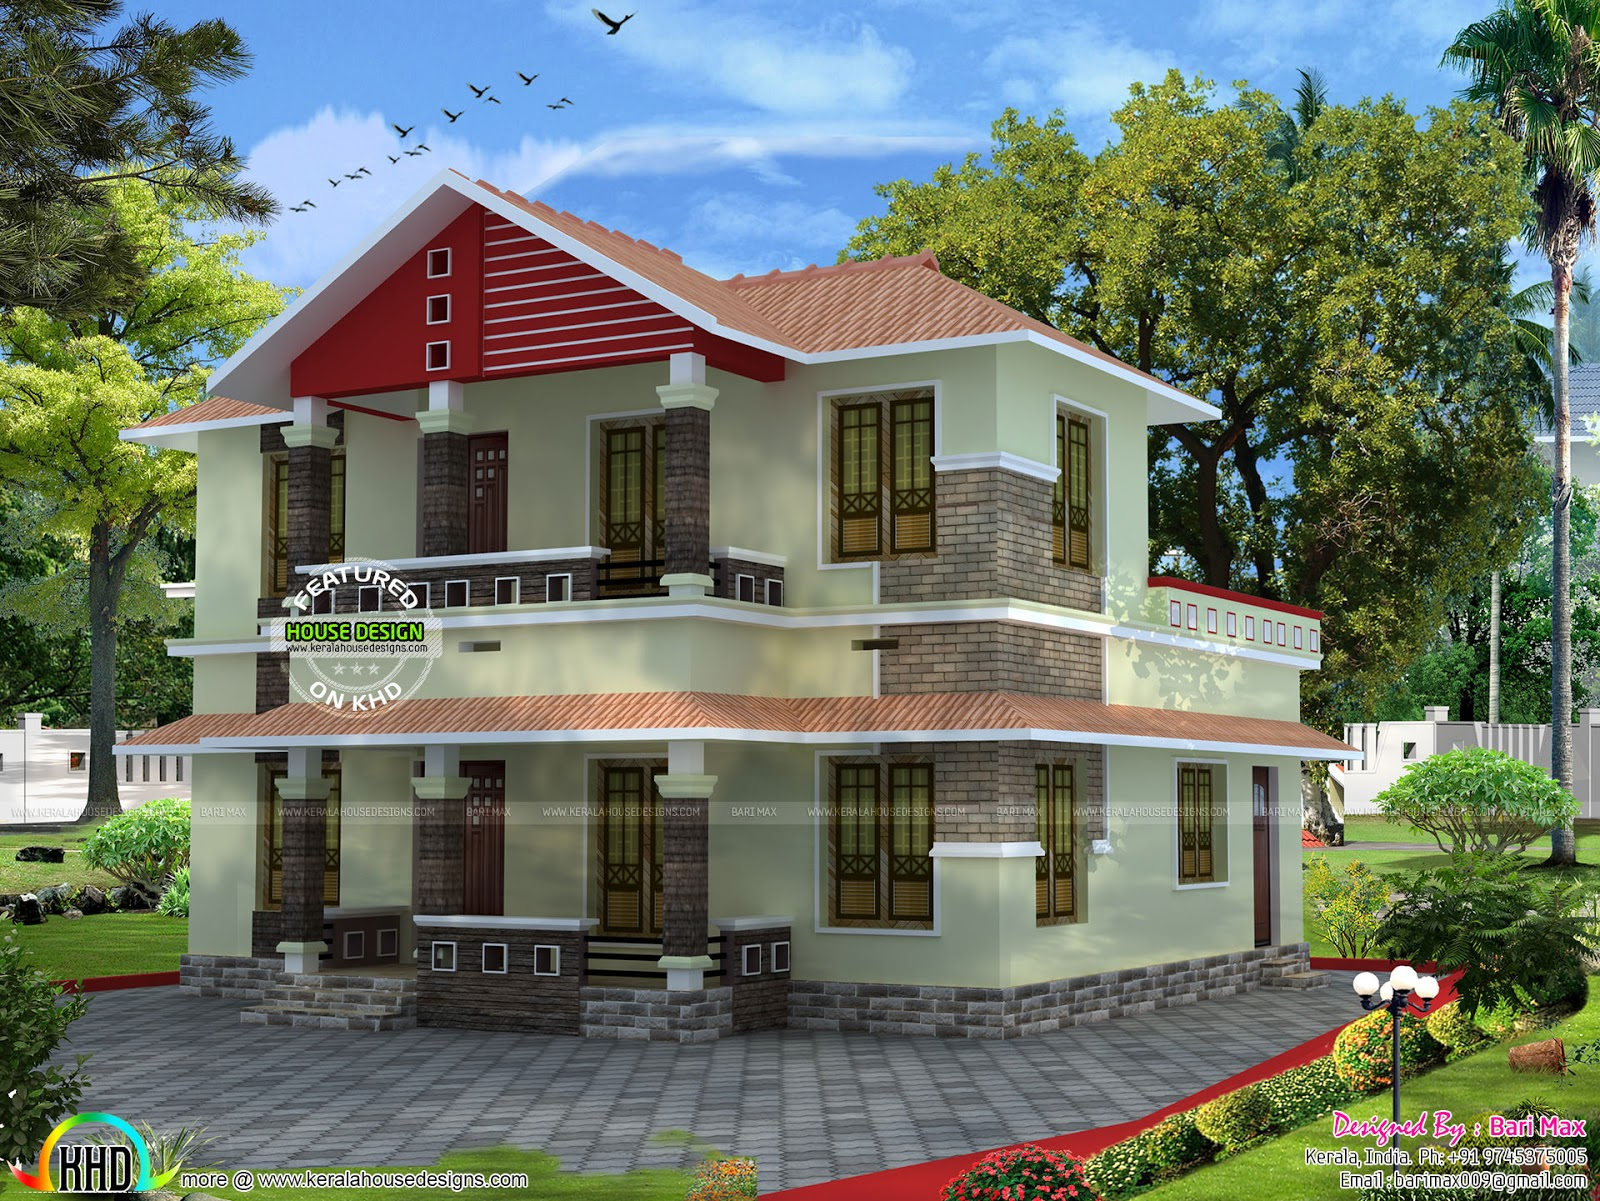 Low budget slop roof home kerala home design and floor plans Low budget house plans